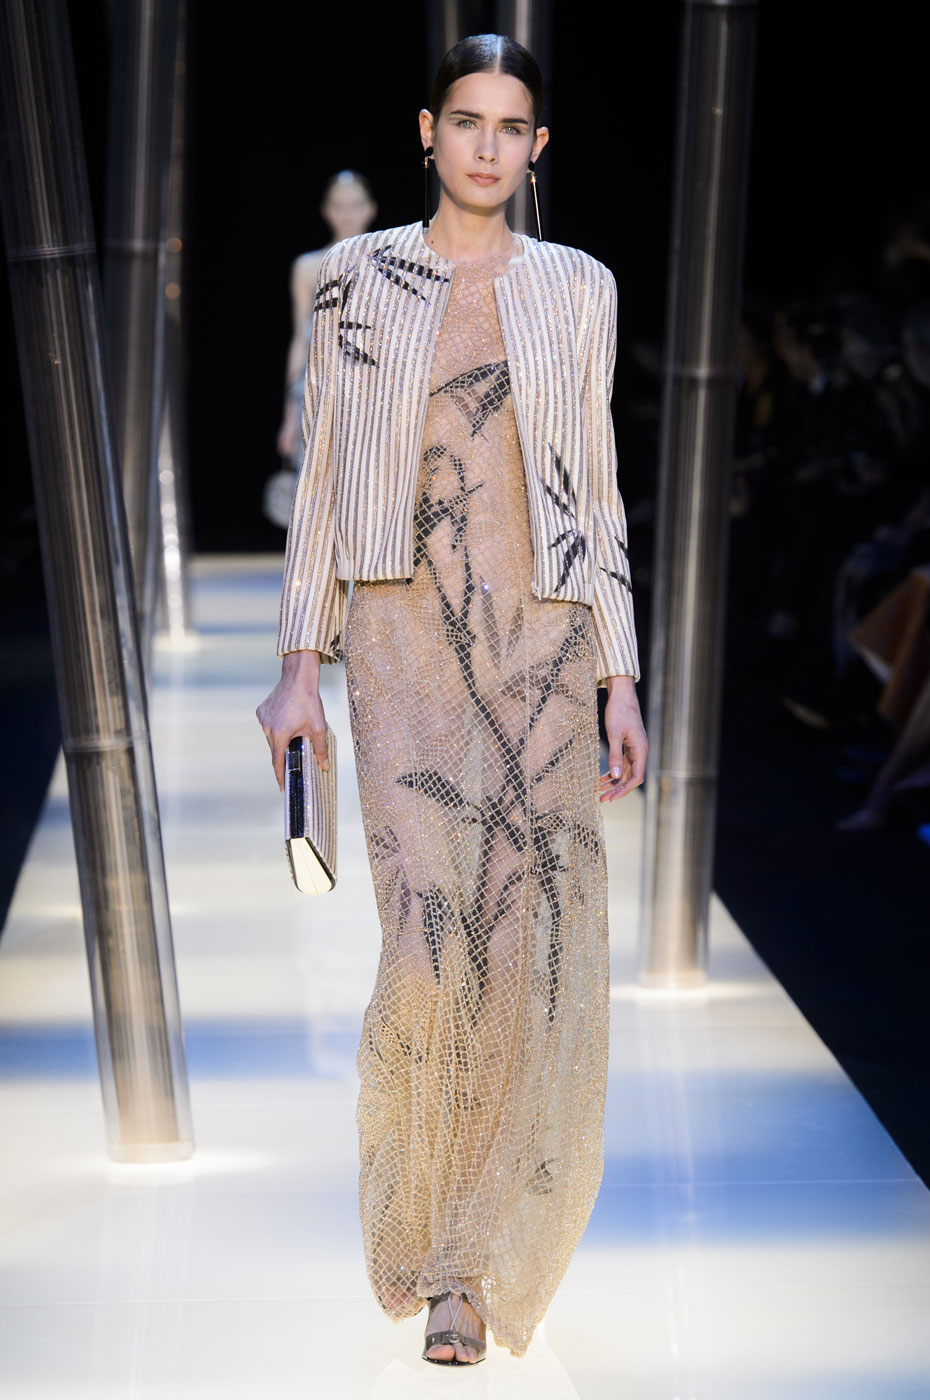 Giorgio-armani-Prive-fashion-runway-show-haute-couture-paris-spring-2015-the-impression-093